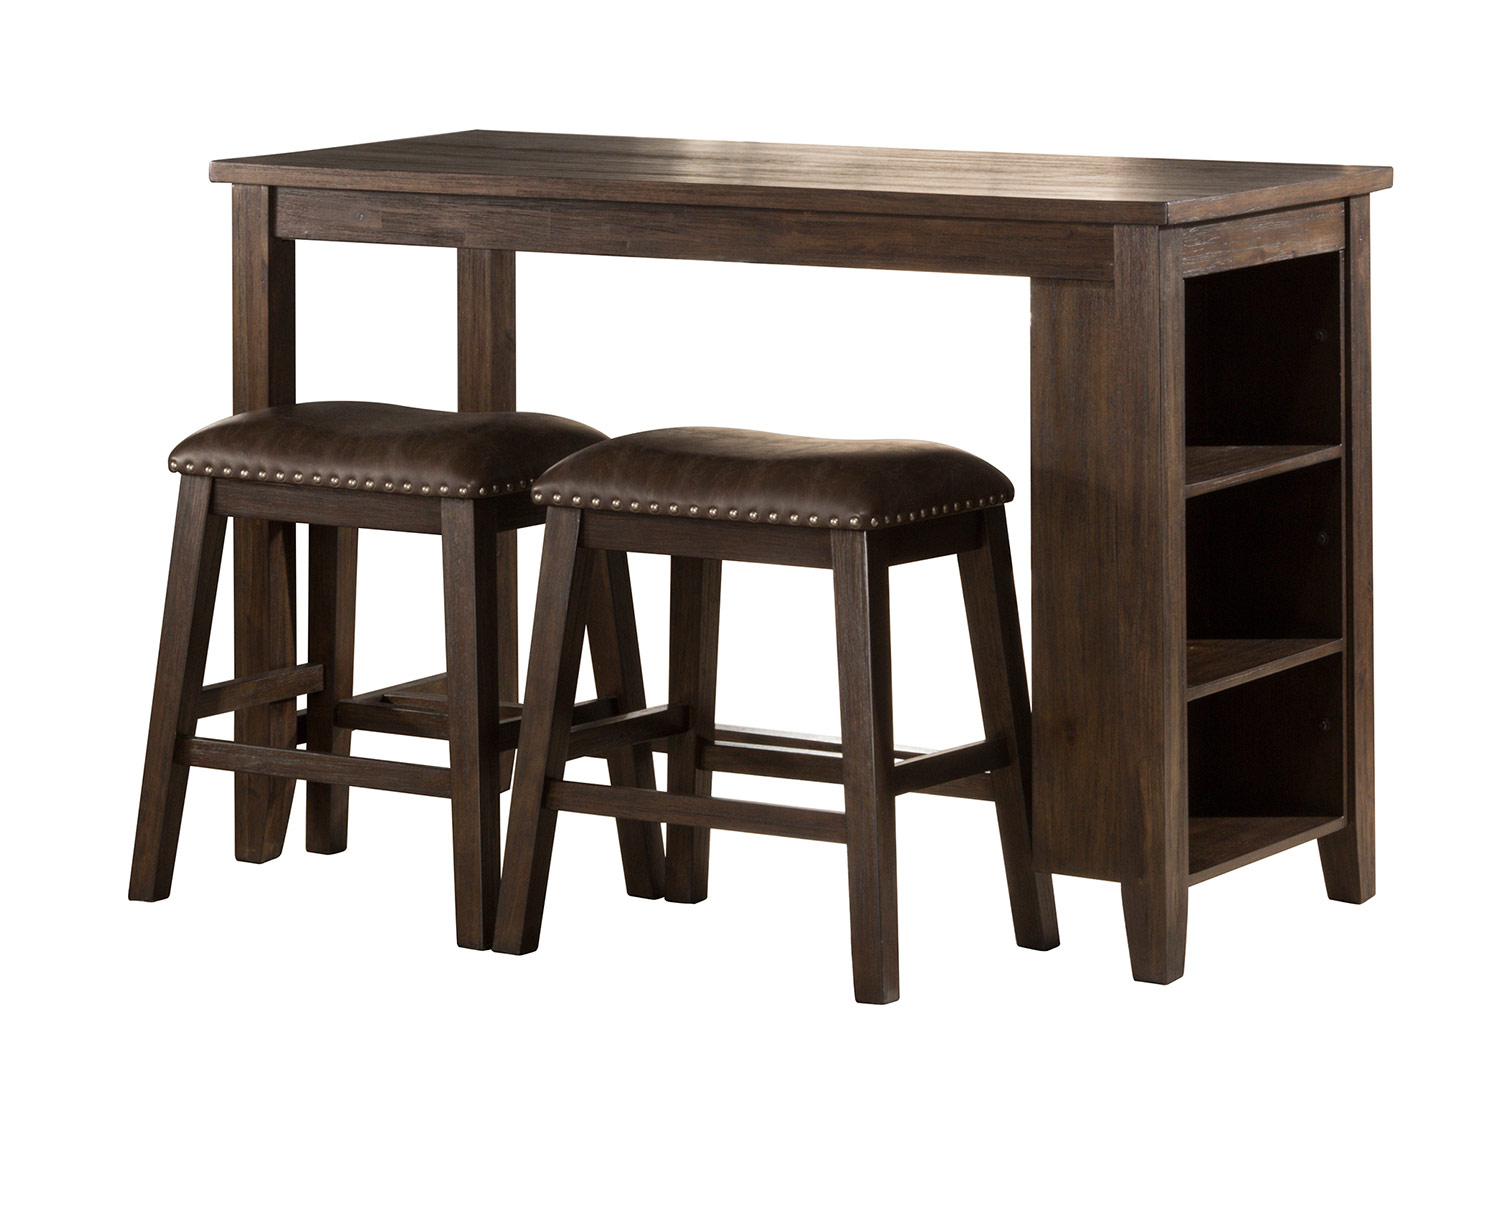 Hillsdale Spencer 3 Piece Counter Height Dining Set With Backless Counter  Height Stools   Dark Espresso